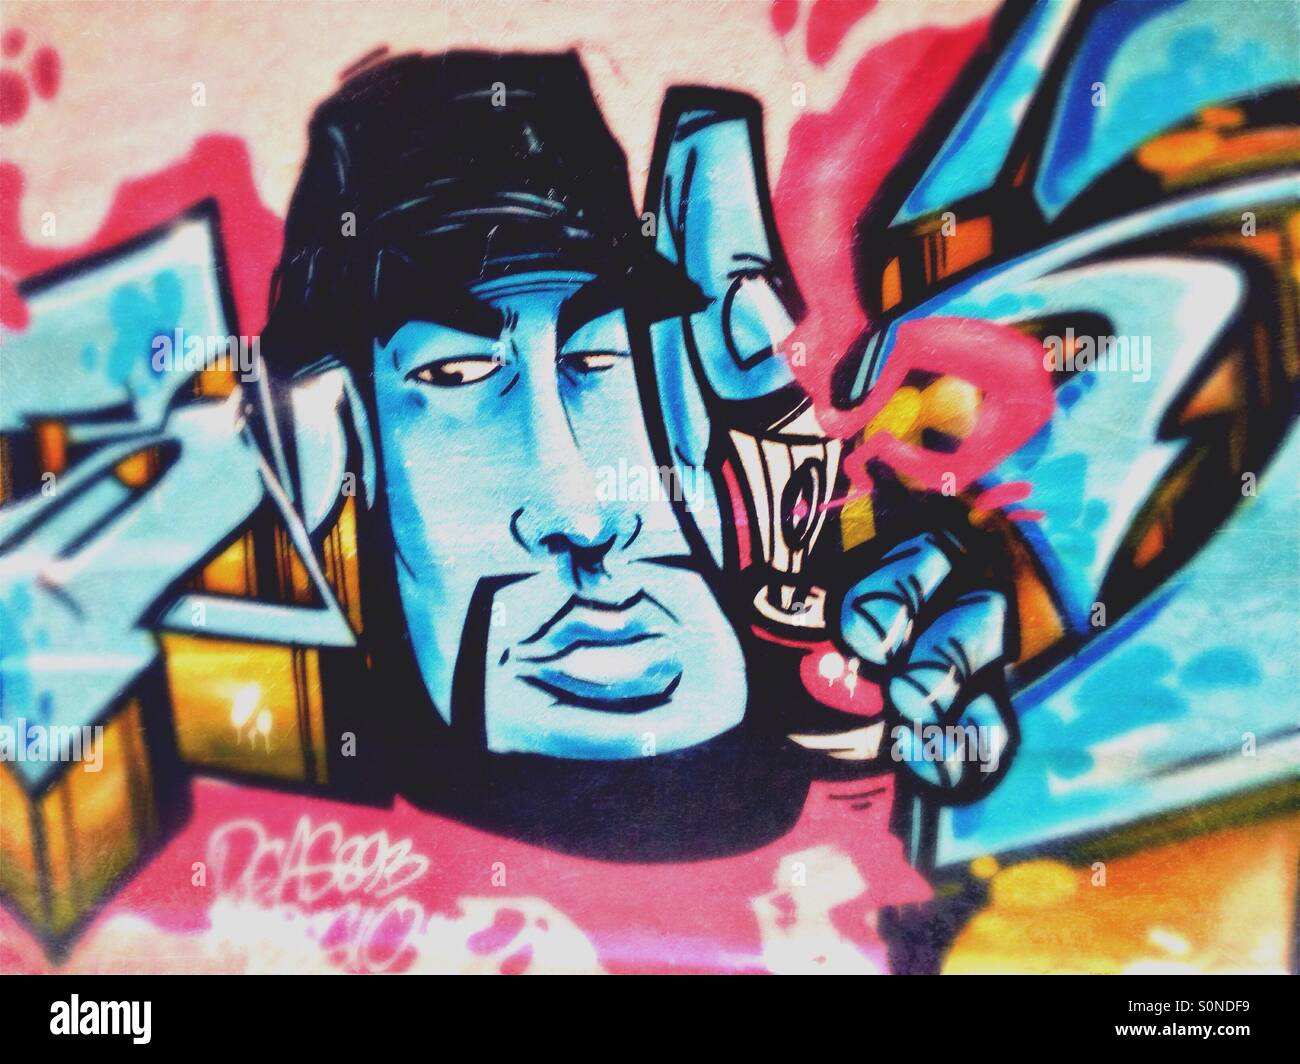 Street art of man with moustache and hat - Stock Image